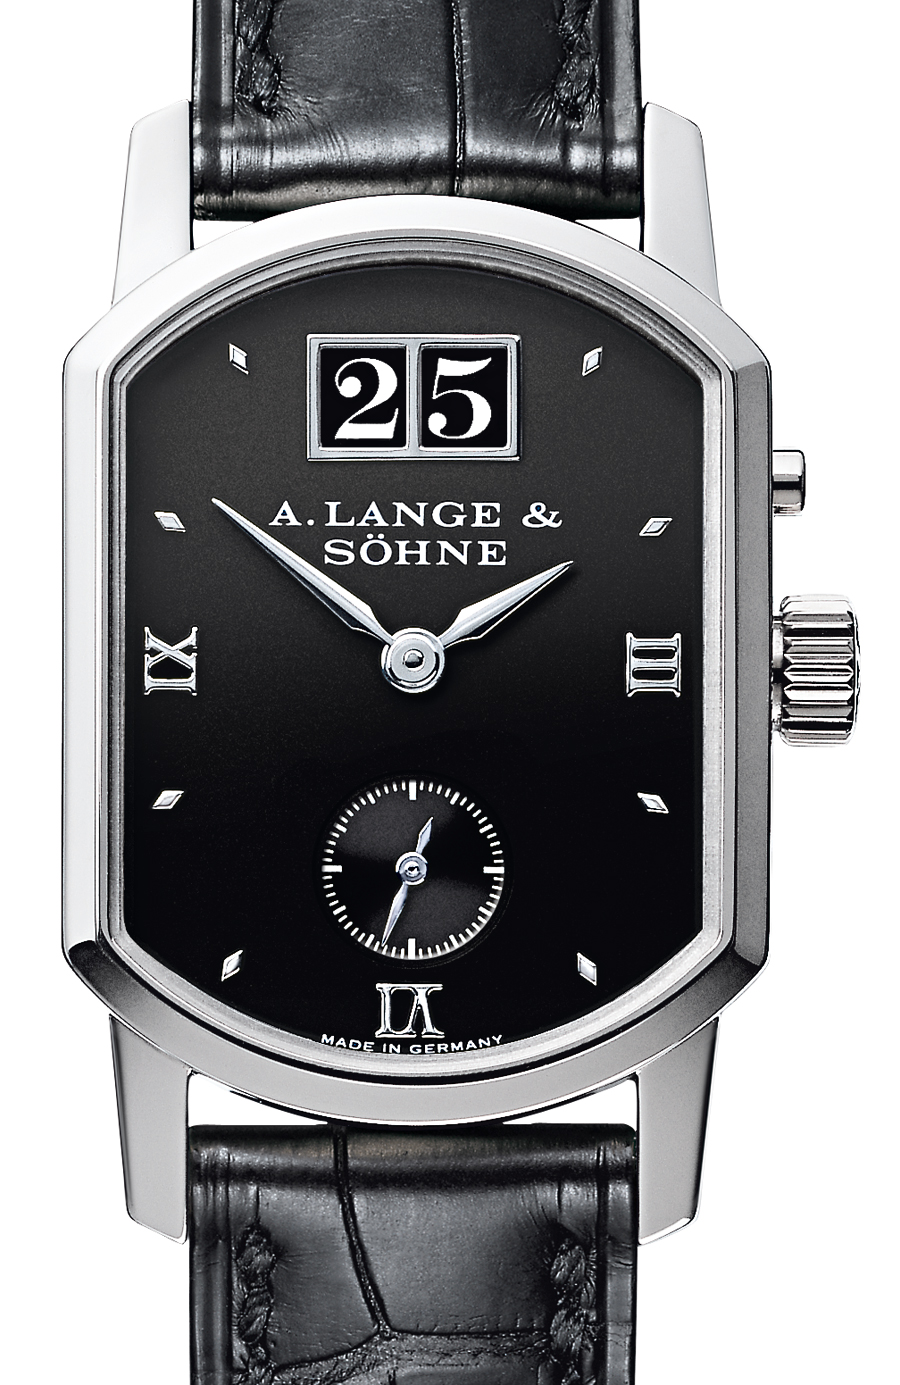 A. Lange & Sohne Replica Watches: Buy High ... - a HOT watch